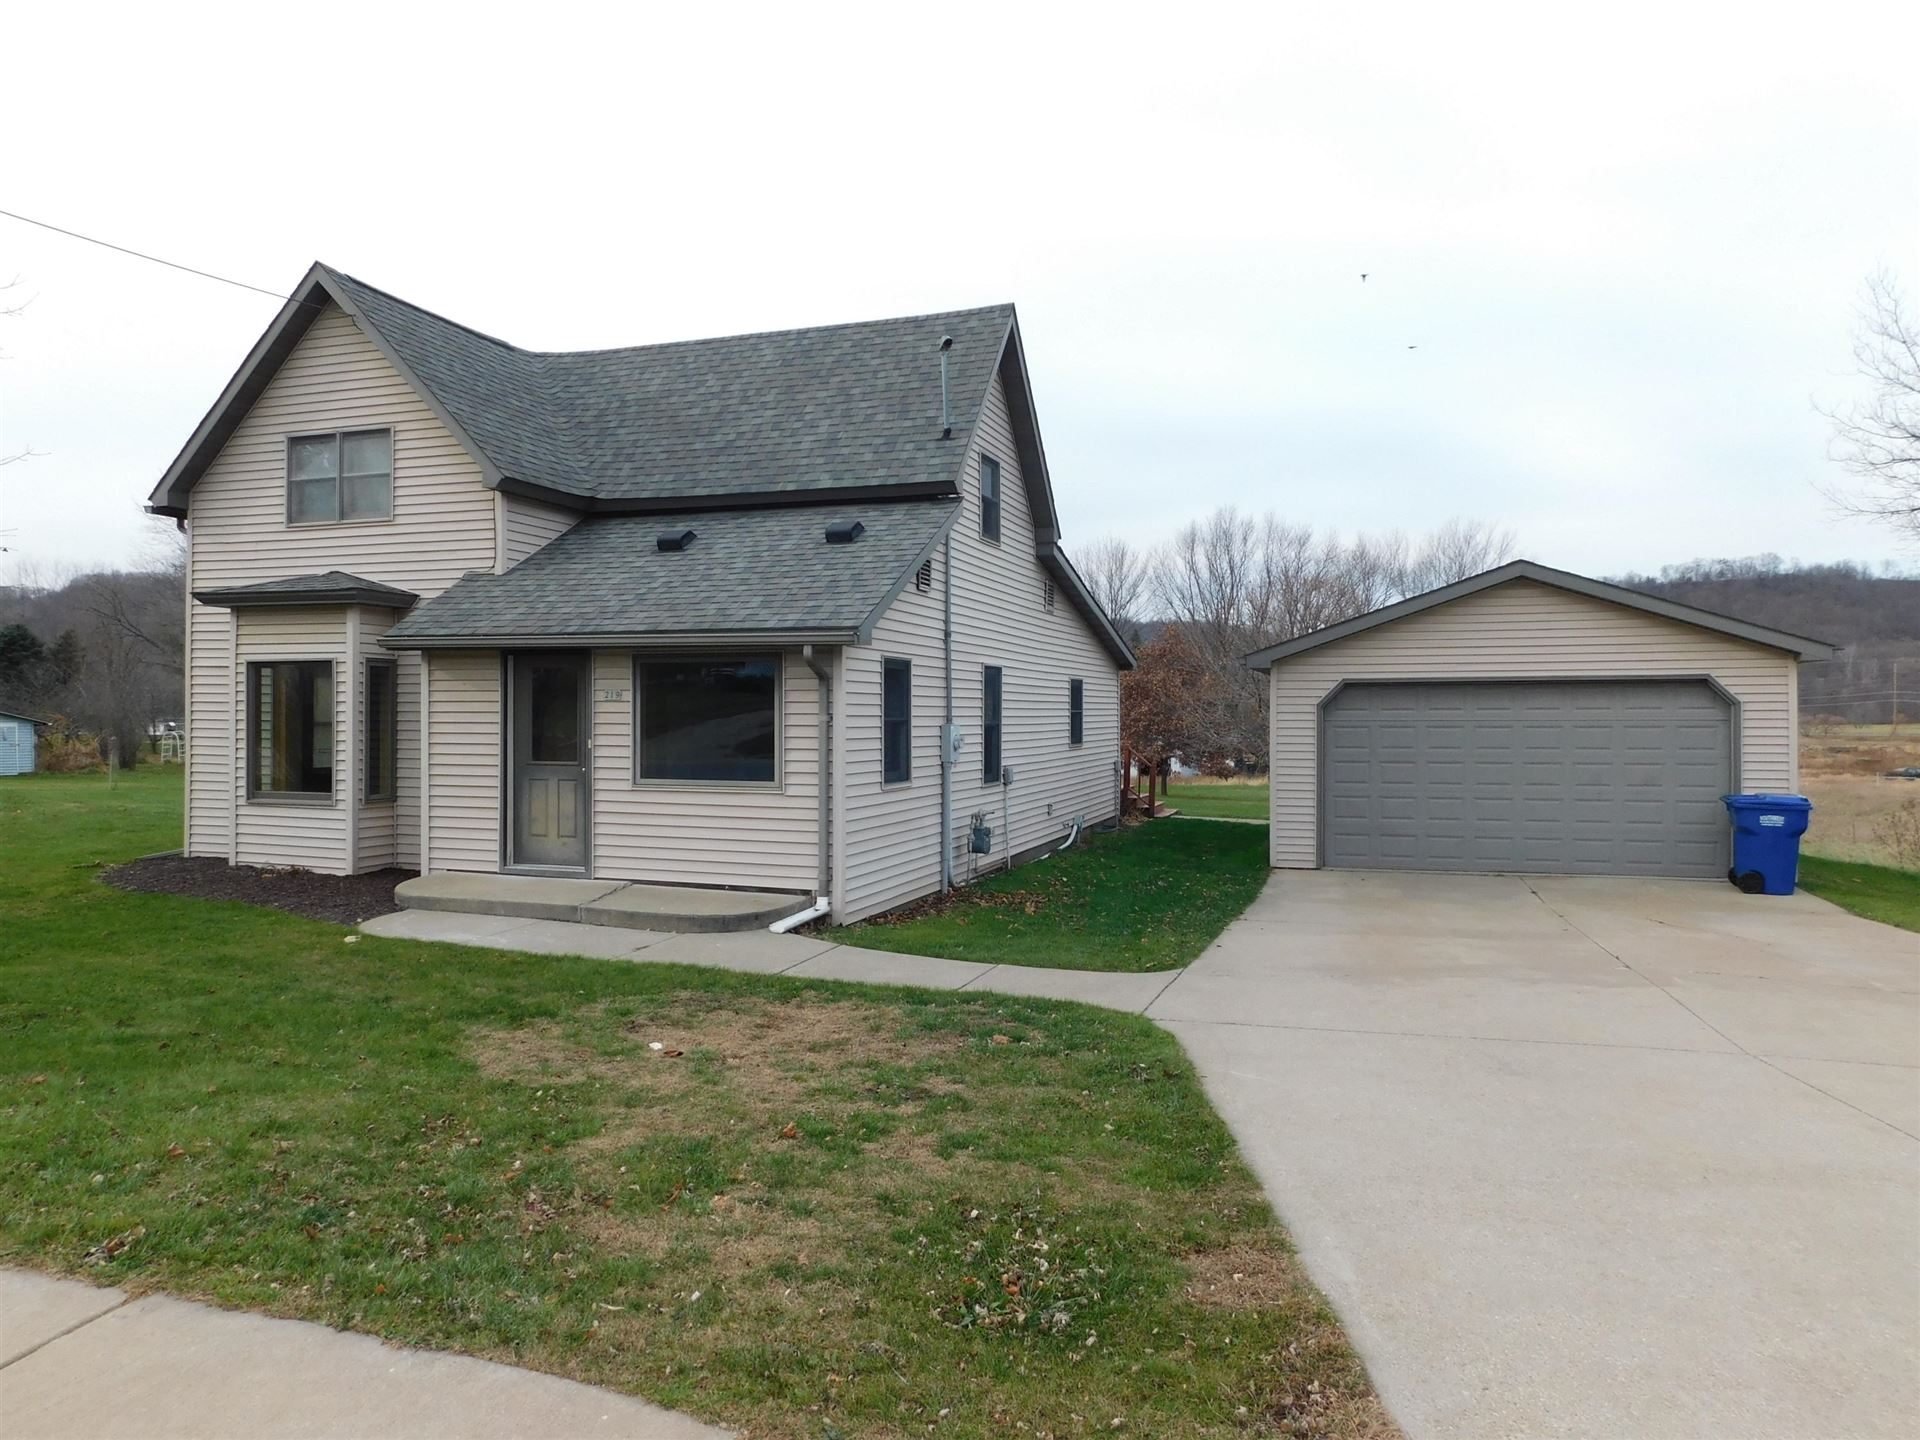 219 S Commercial St, Viola, WI 54664 - MLS#: 1719377